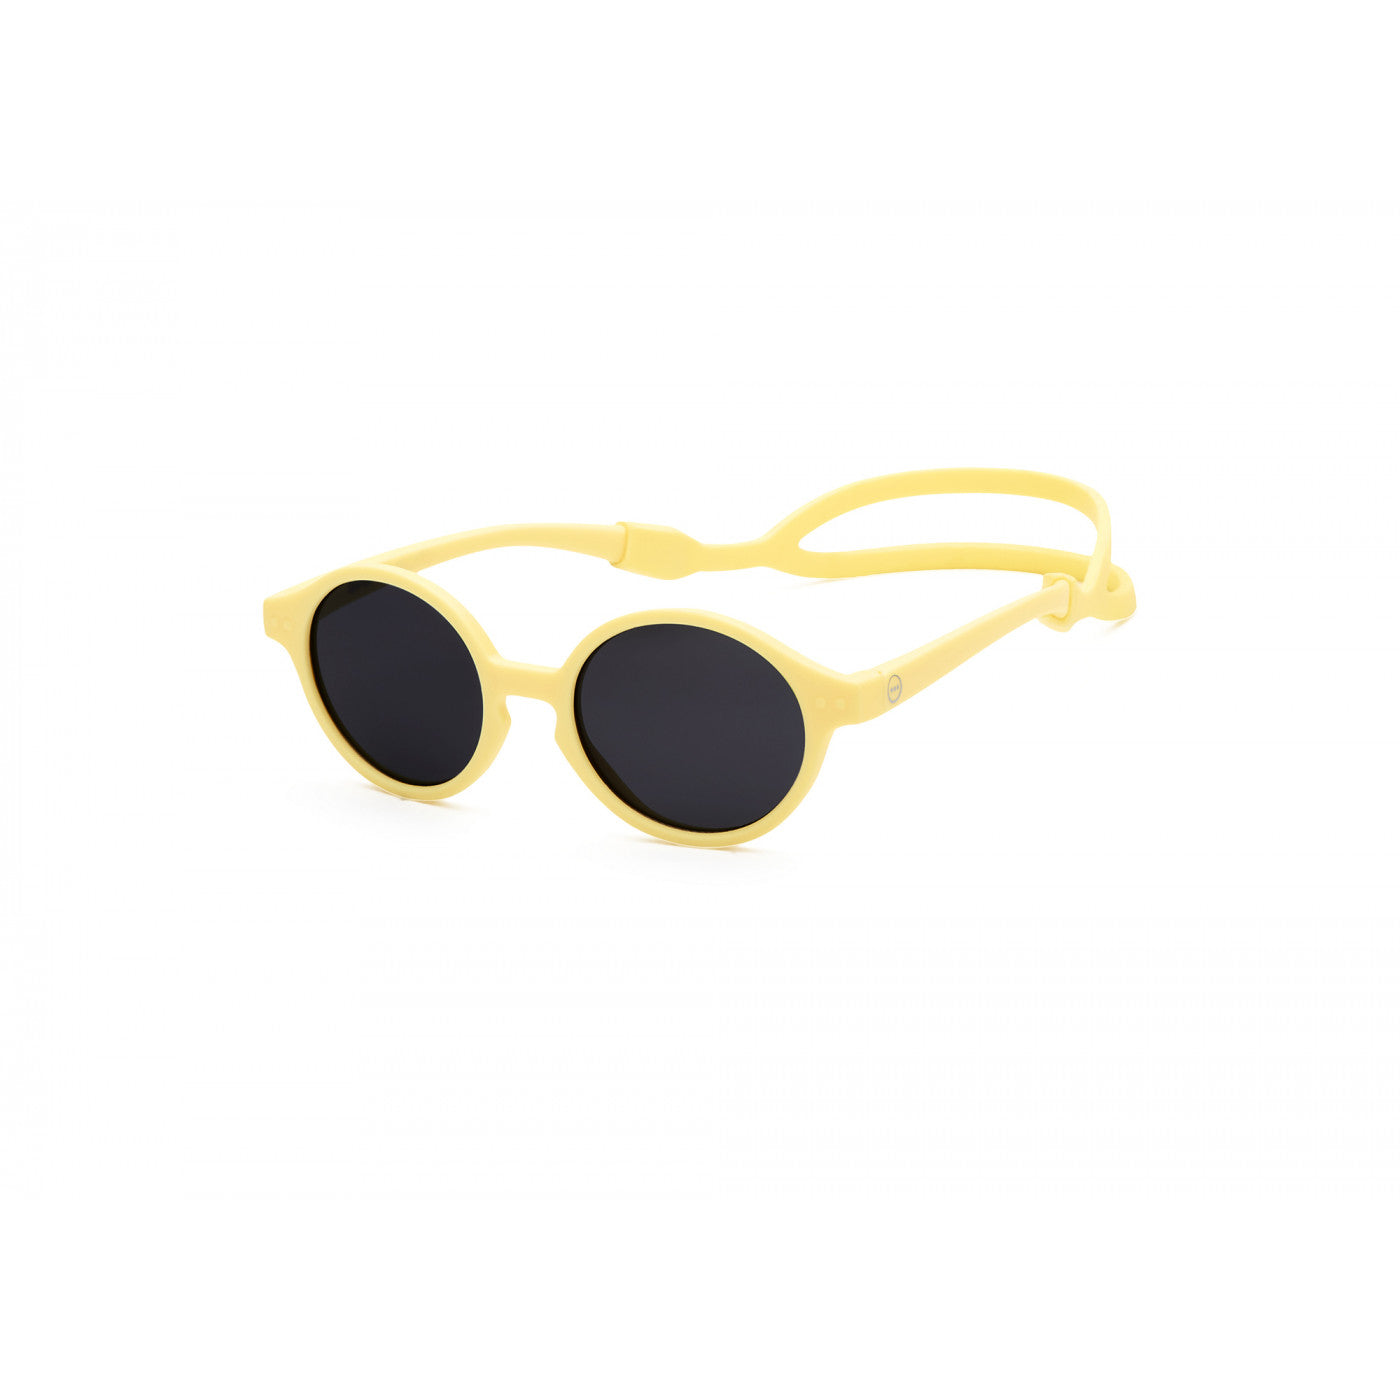 SUN KIDS SUNGLASSES / 12-36 MONTHS / LEMONADE